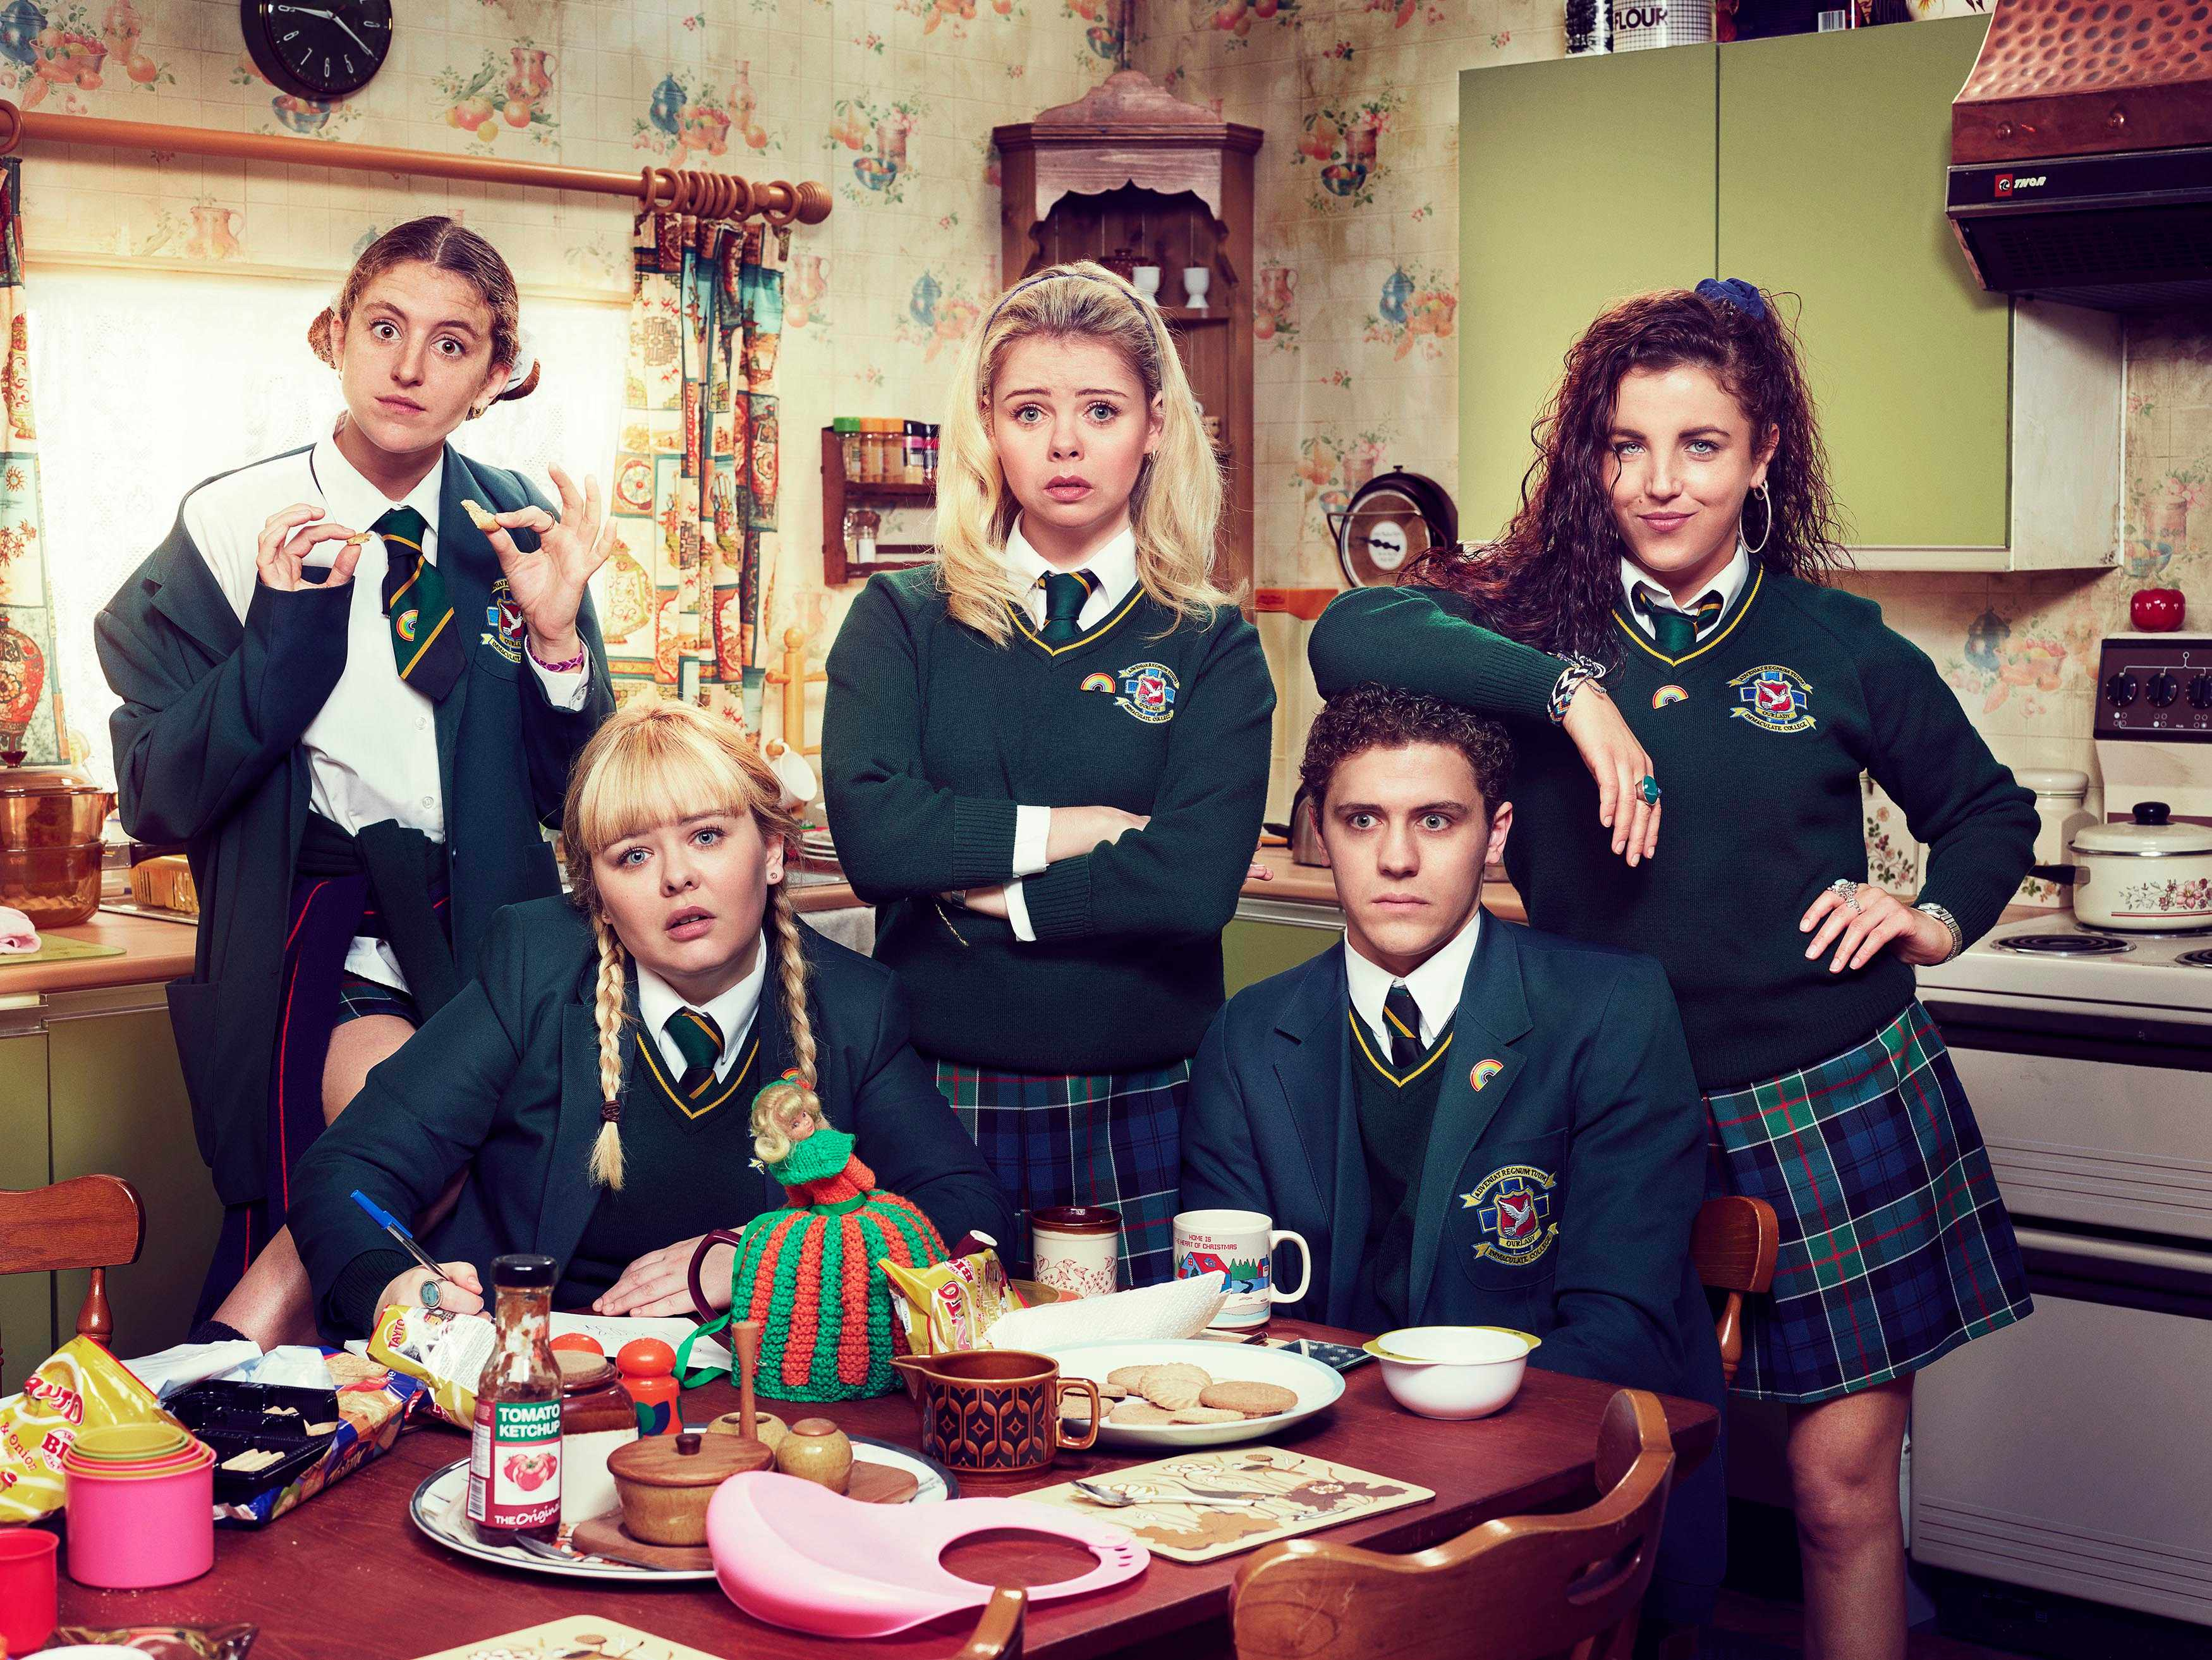 l-r:- Orla (Louise Harland), Clare (Nicola Coughlan), Erin (Saoirse-Monica Jackson),  James (Dylan Llewellyn) and Michelle (Jamie-Lee ODonnell)